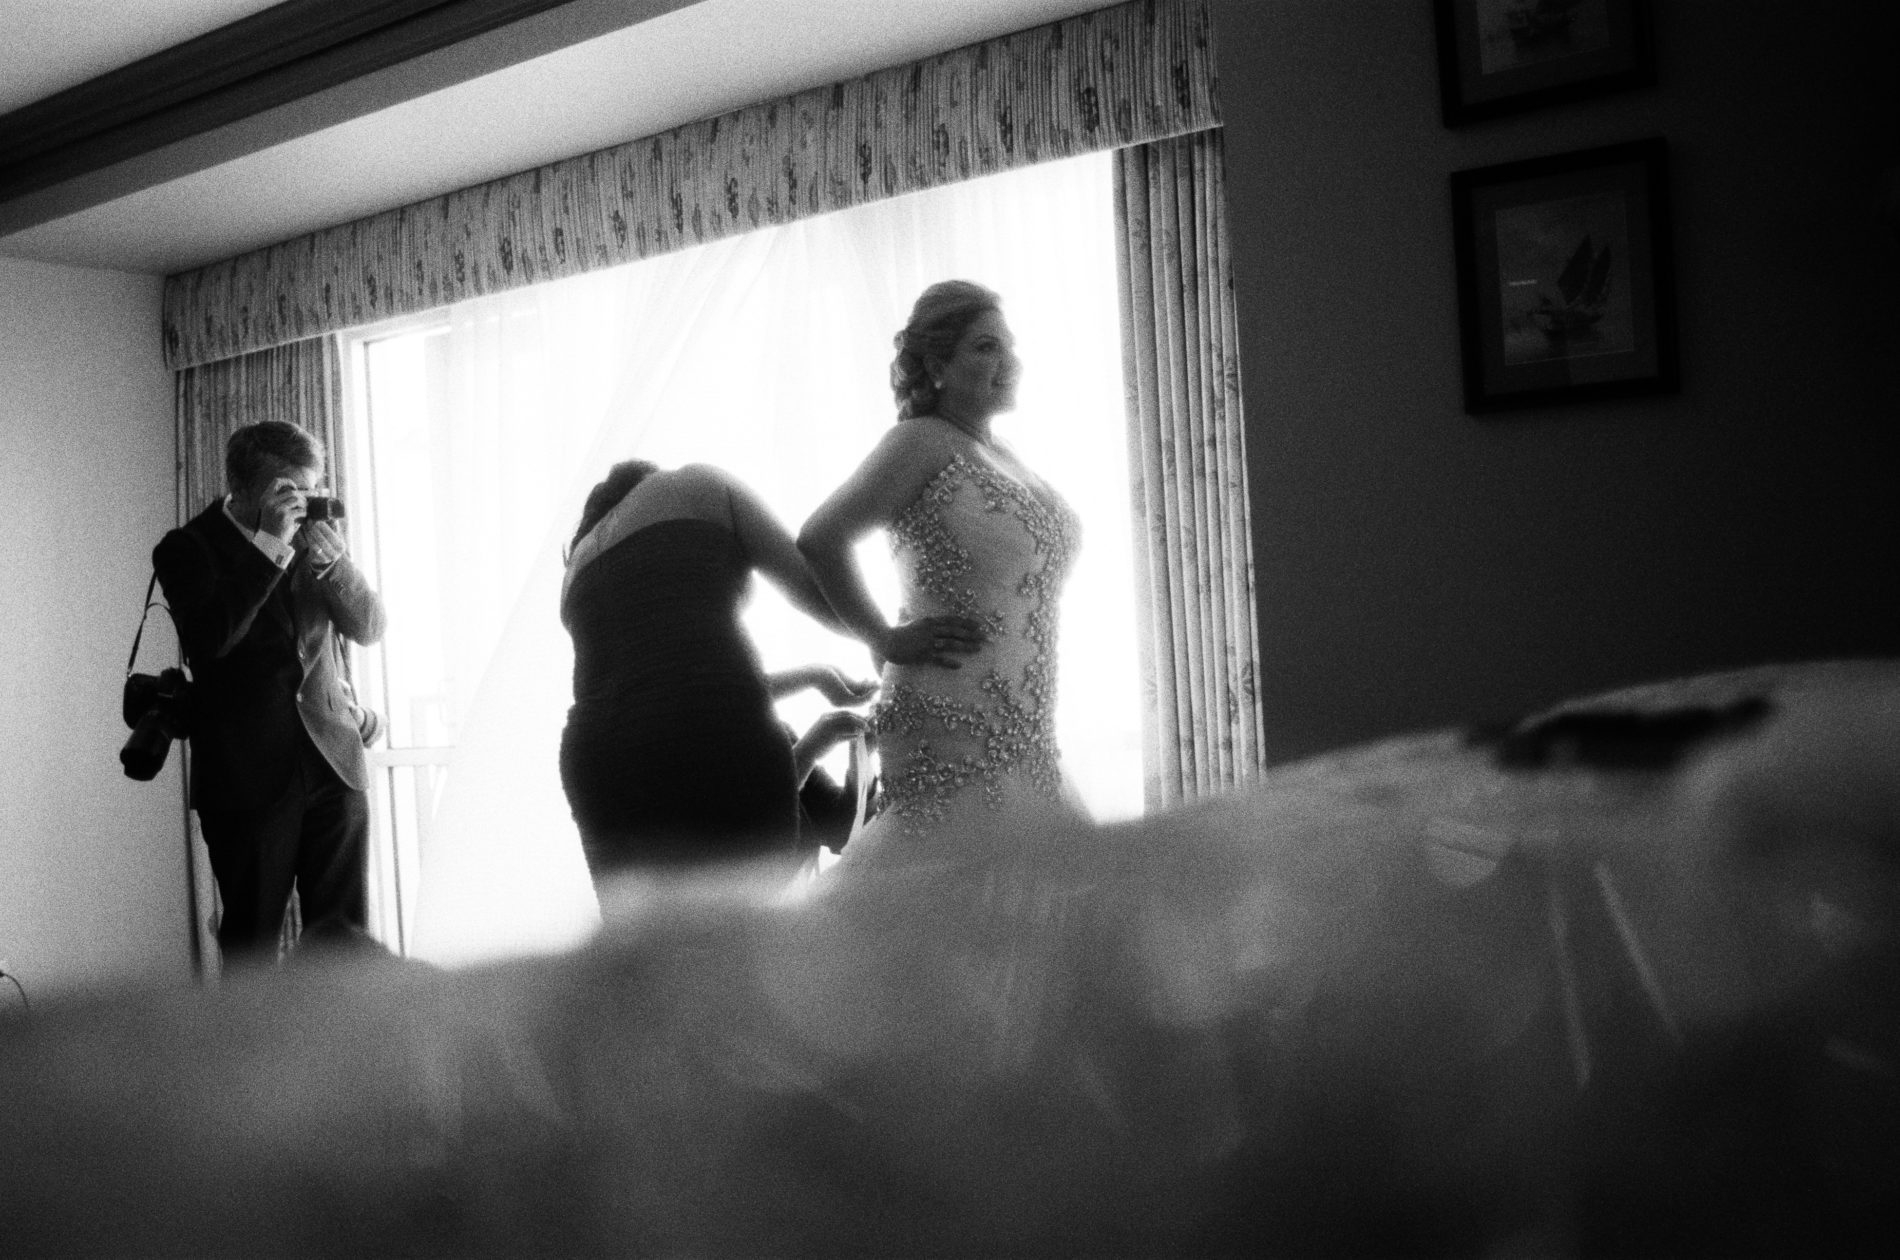 Philip Thomas photographing a bride on her wedding day at The Menger Hotel, San Antonio, Texas.